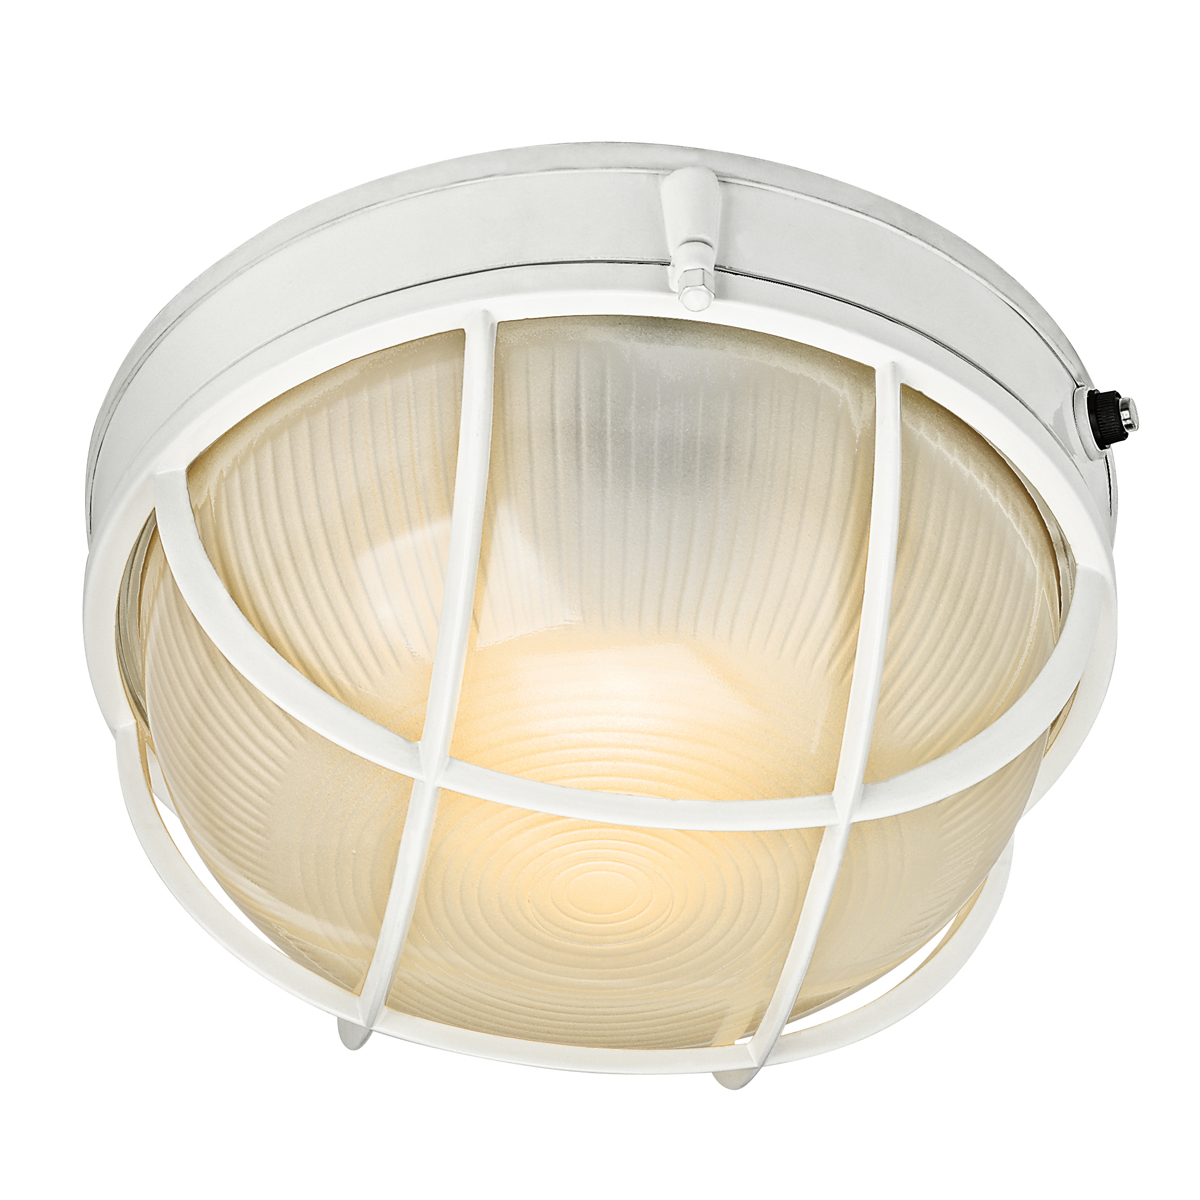 Fluorescent Exterior Wall Lights : Kichler Lighting (10622WH) 1-Light Fluorescent Outdoor Wall Sconce in White